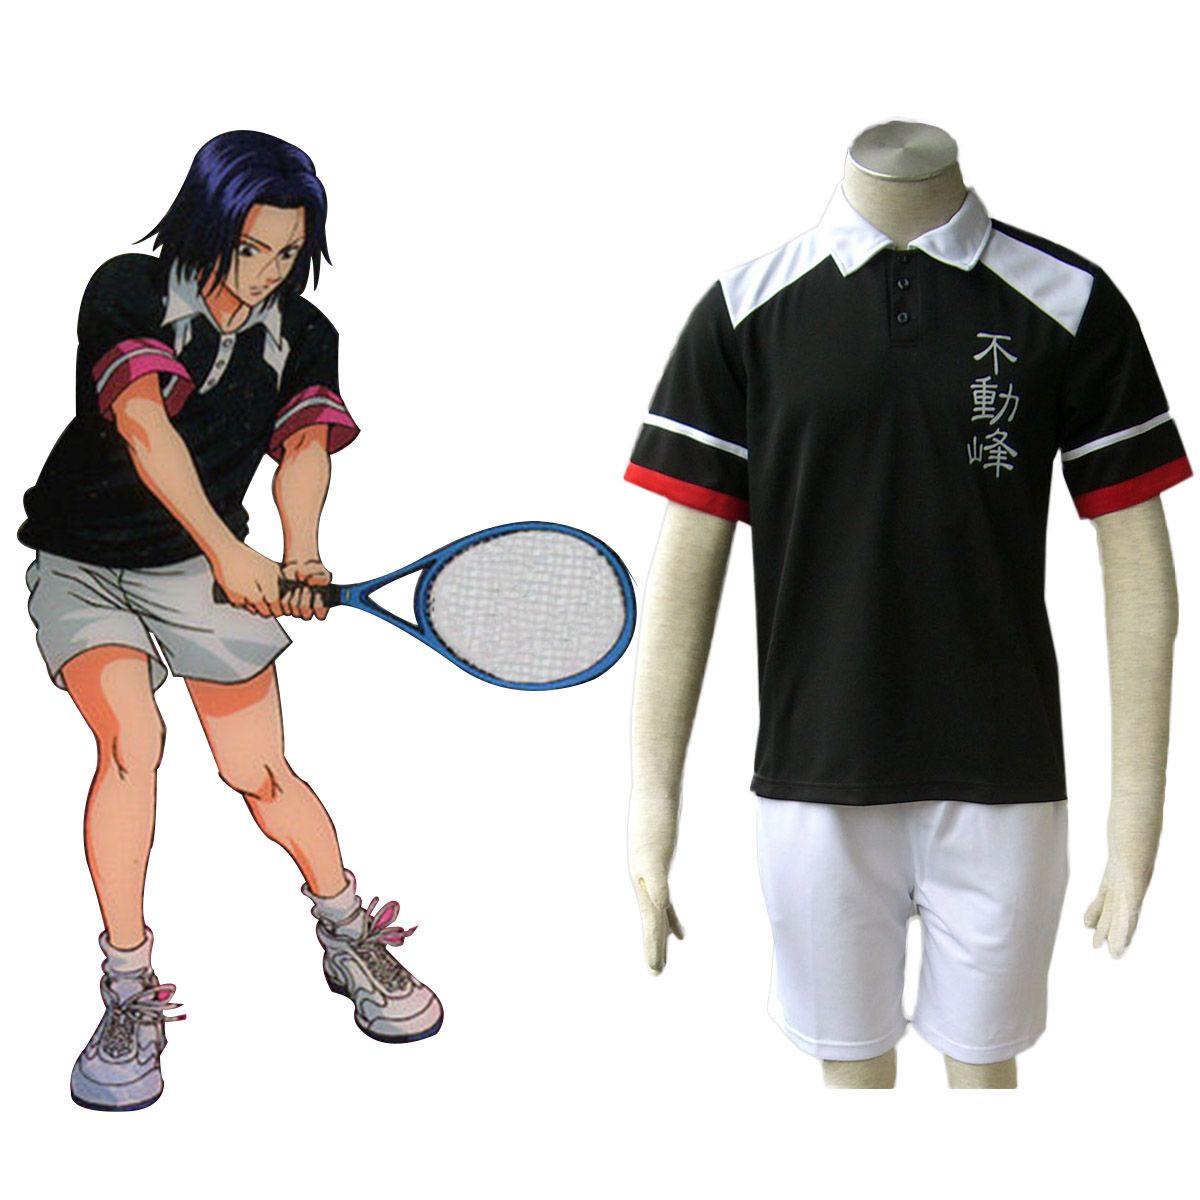 Deluxe The Prince of Tennis Fudomine Summer Uniforms Cosplay Costumes